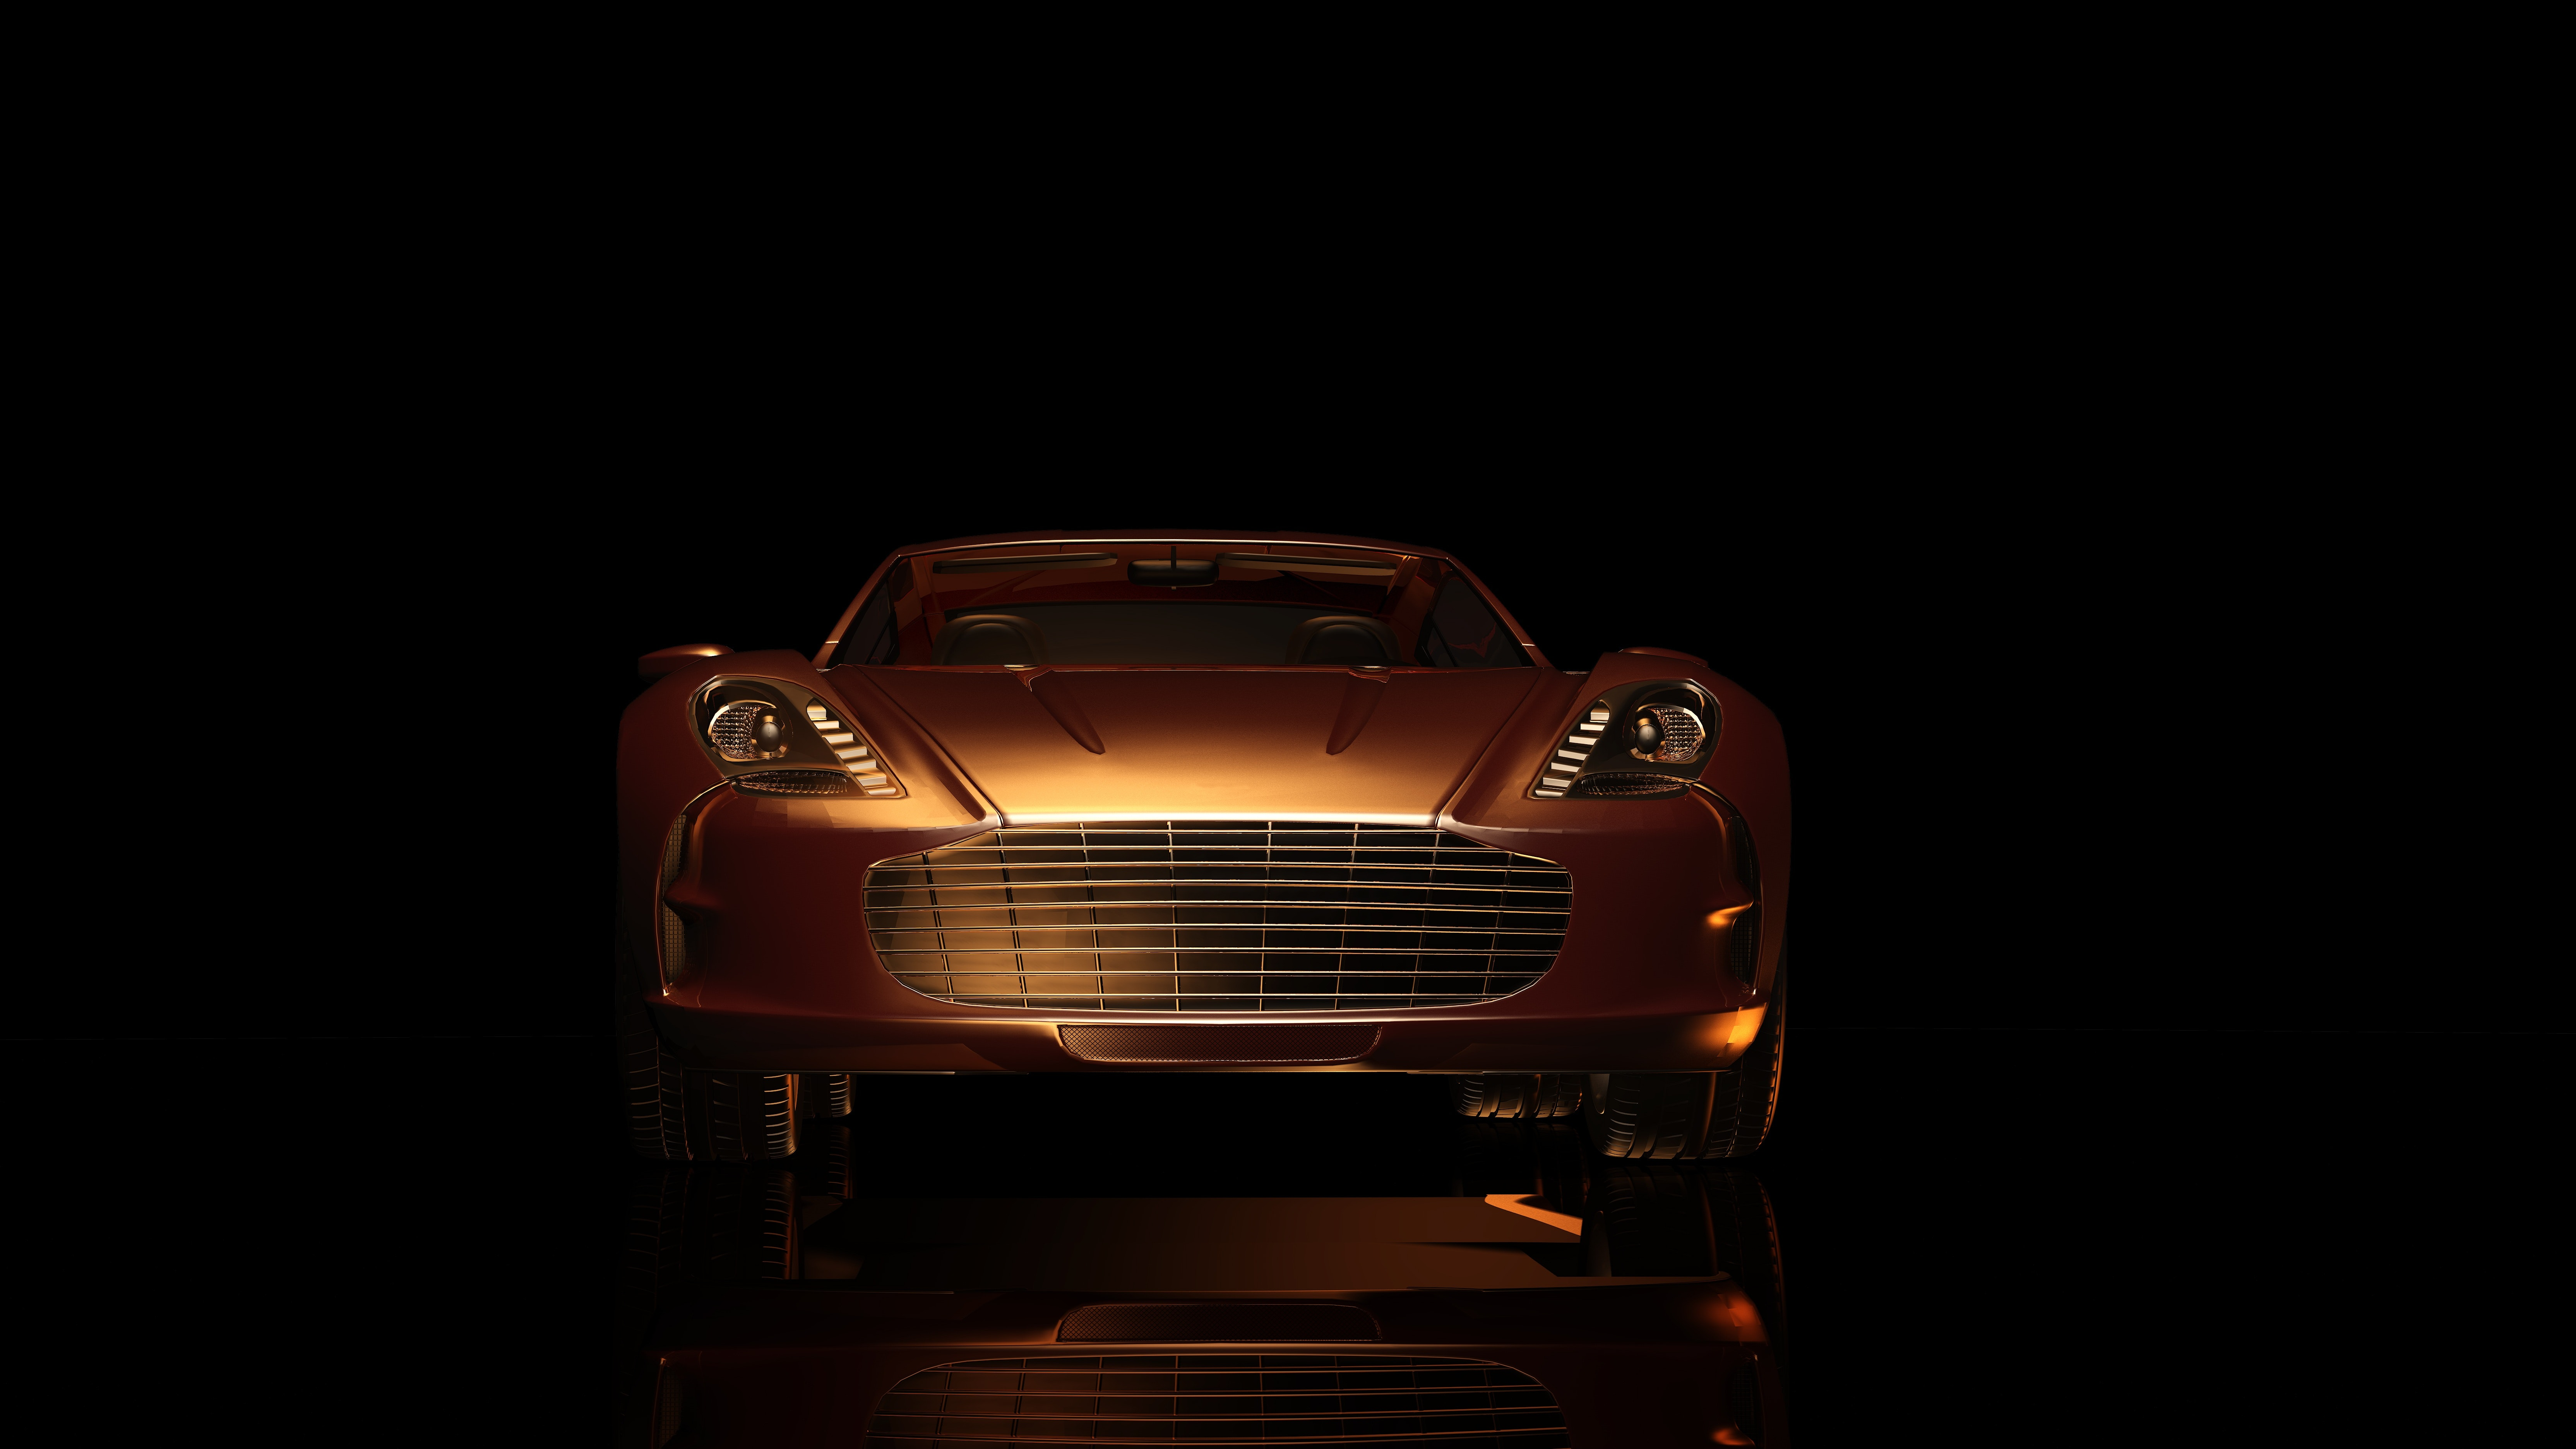 Image Result For Luxury Sports Auto Wallpaper